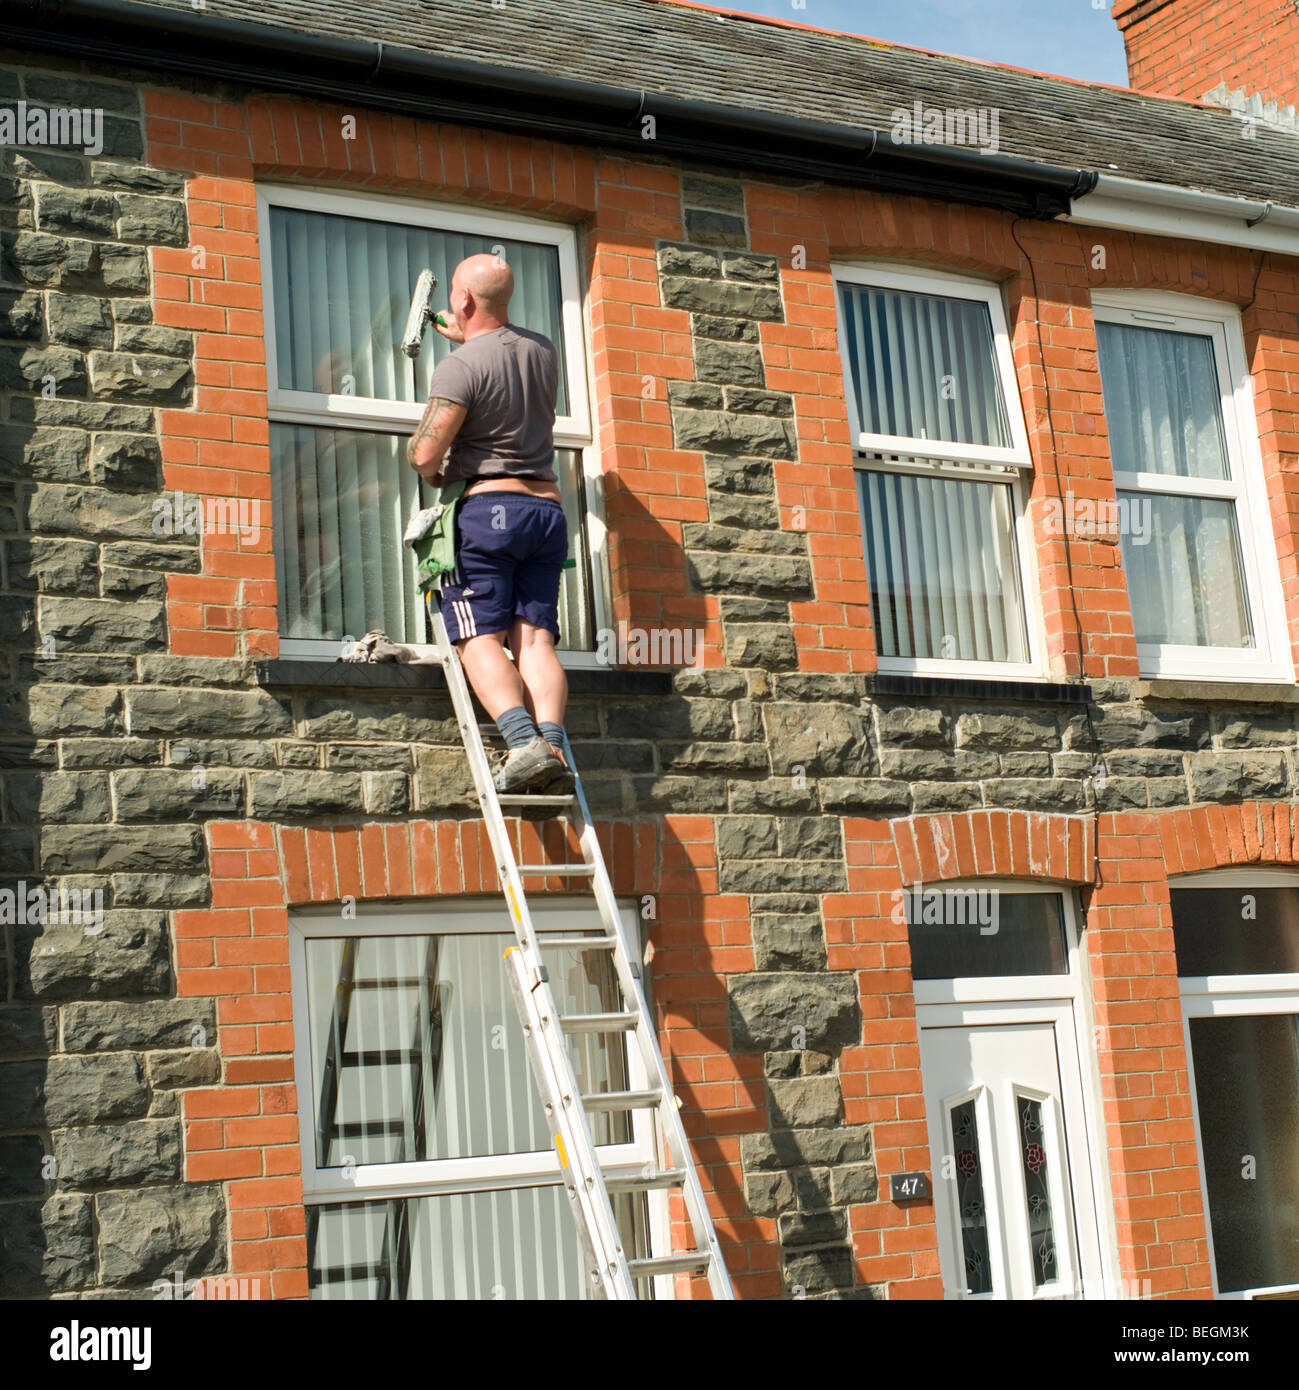 Self employed man sole trader standing on ladder cleaning windows of a terraced house, Aberystwyth Wales UK - Stock Image